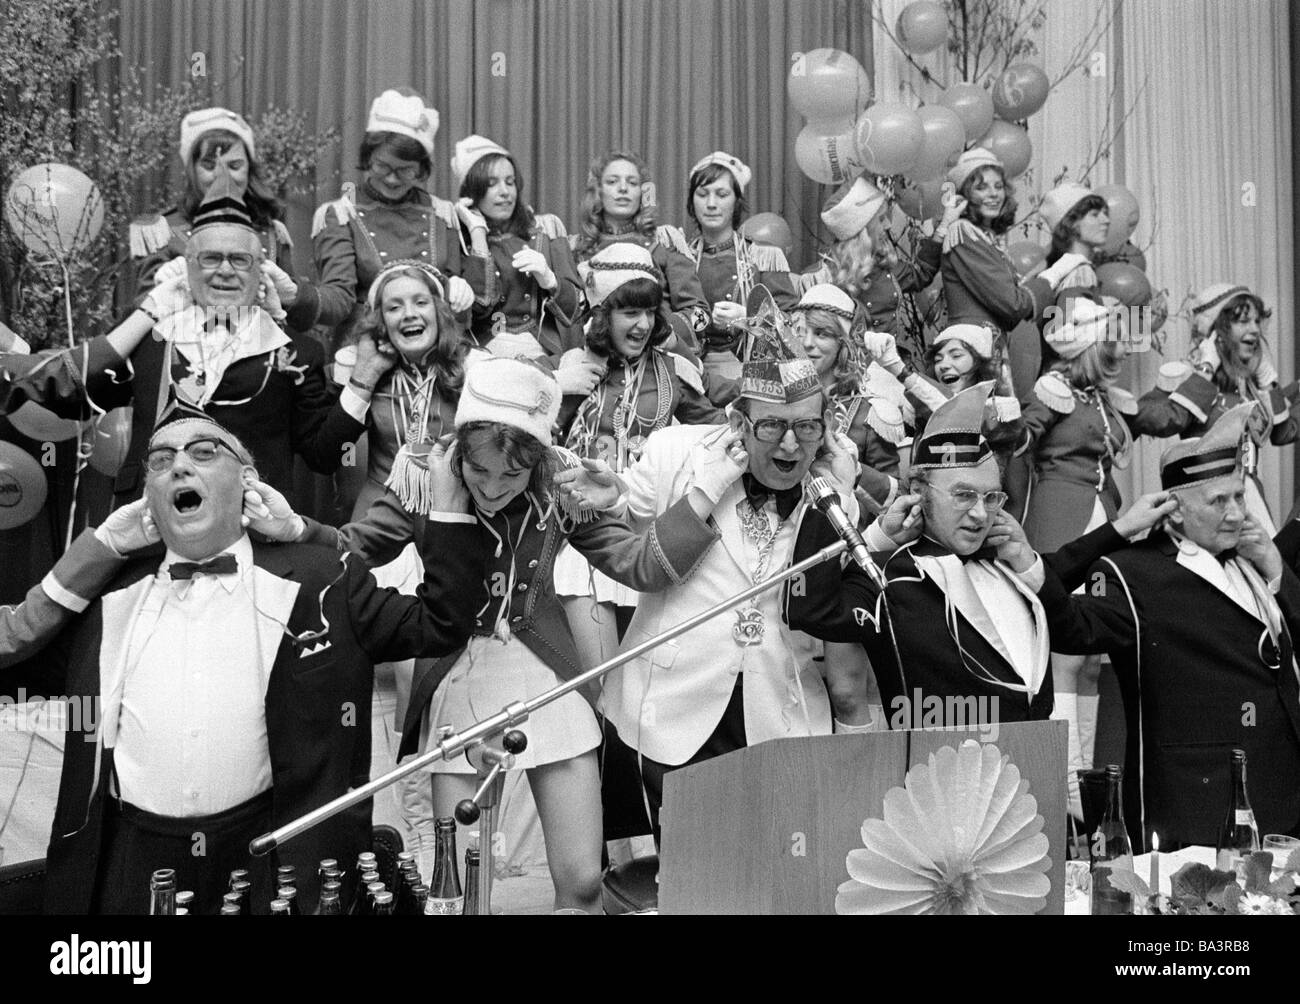 Seventies, black and white photo, people, Rhenish carnival, ElferRat and the dancing group sway to the music - Stock Image